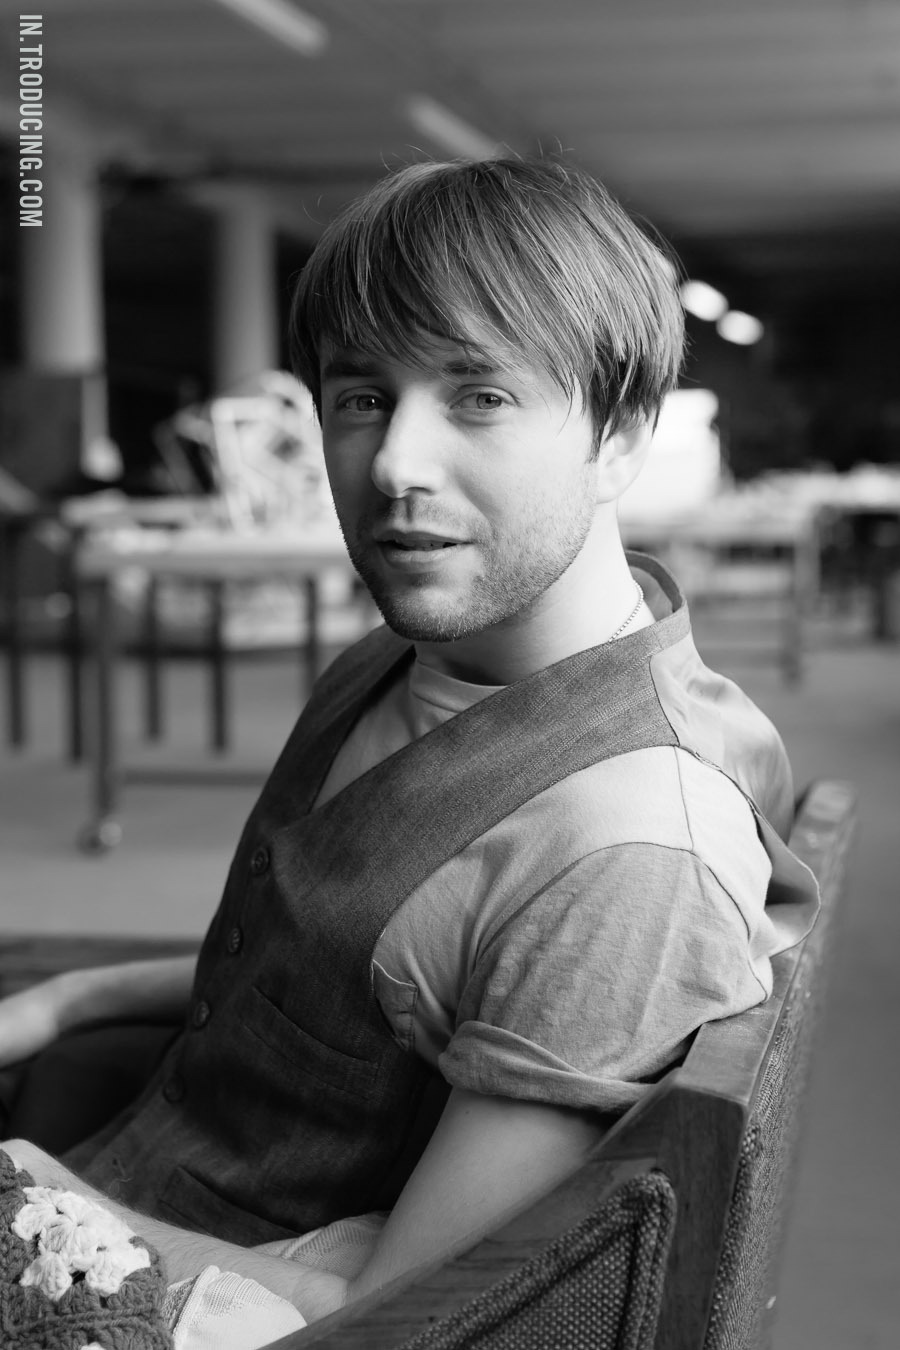 INTRODUCING / VINCENT KARTHEISER SHOT FOR GRAVURE